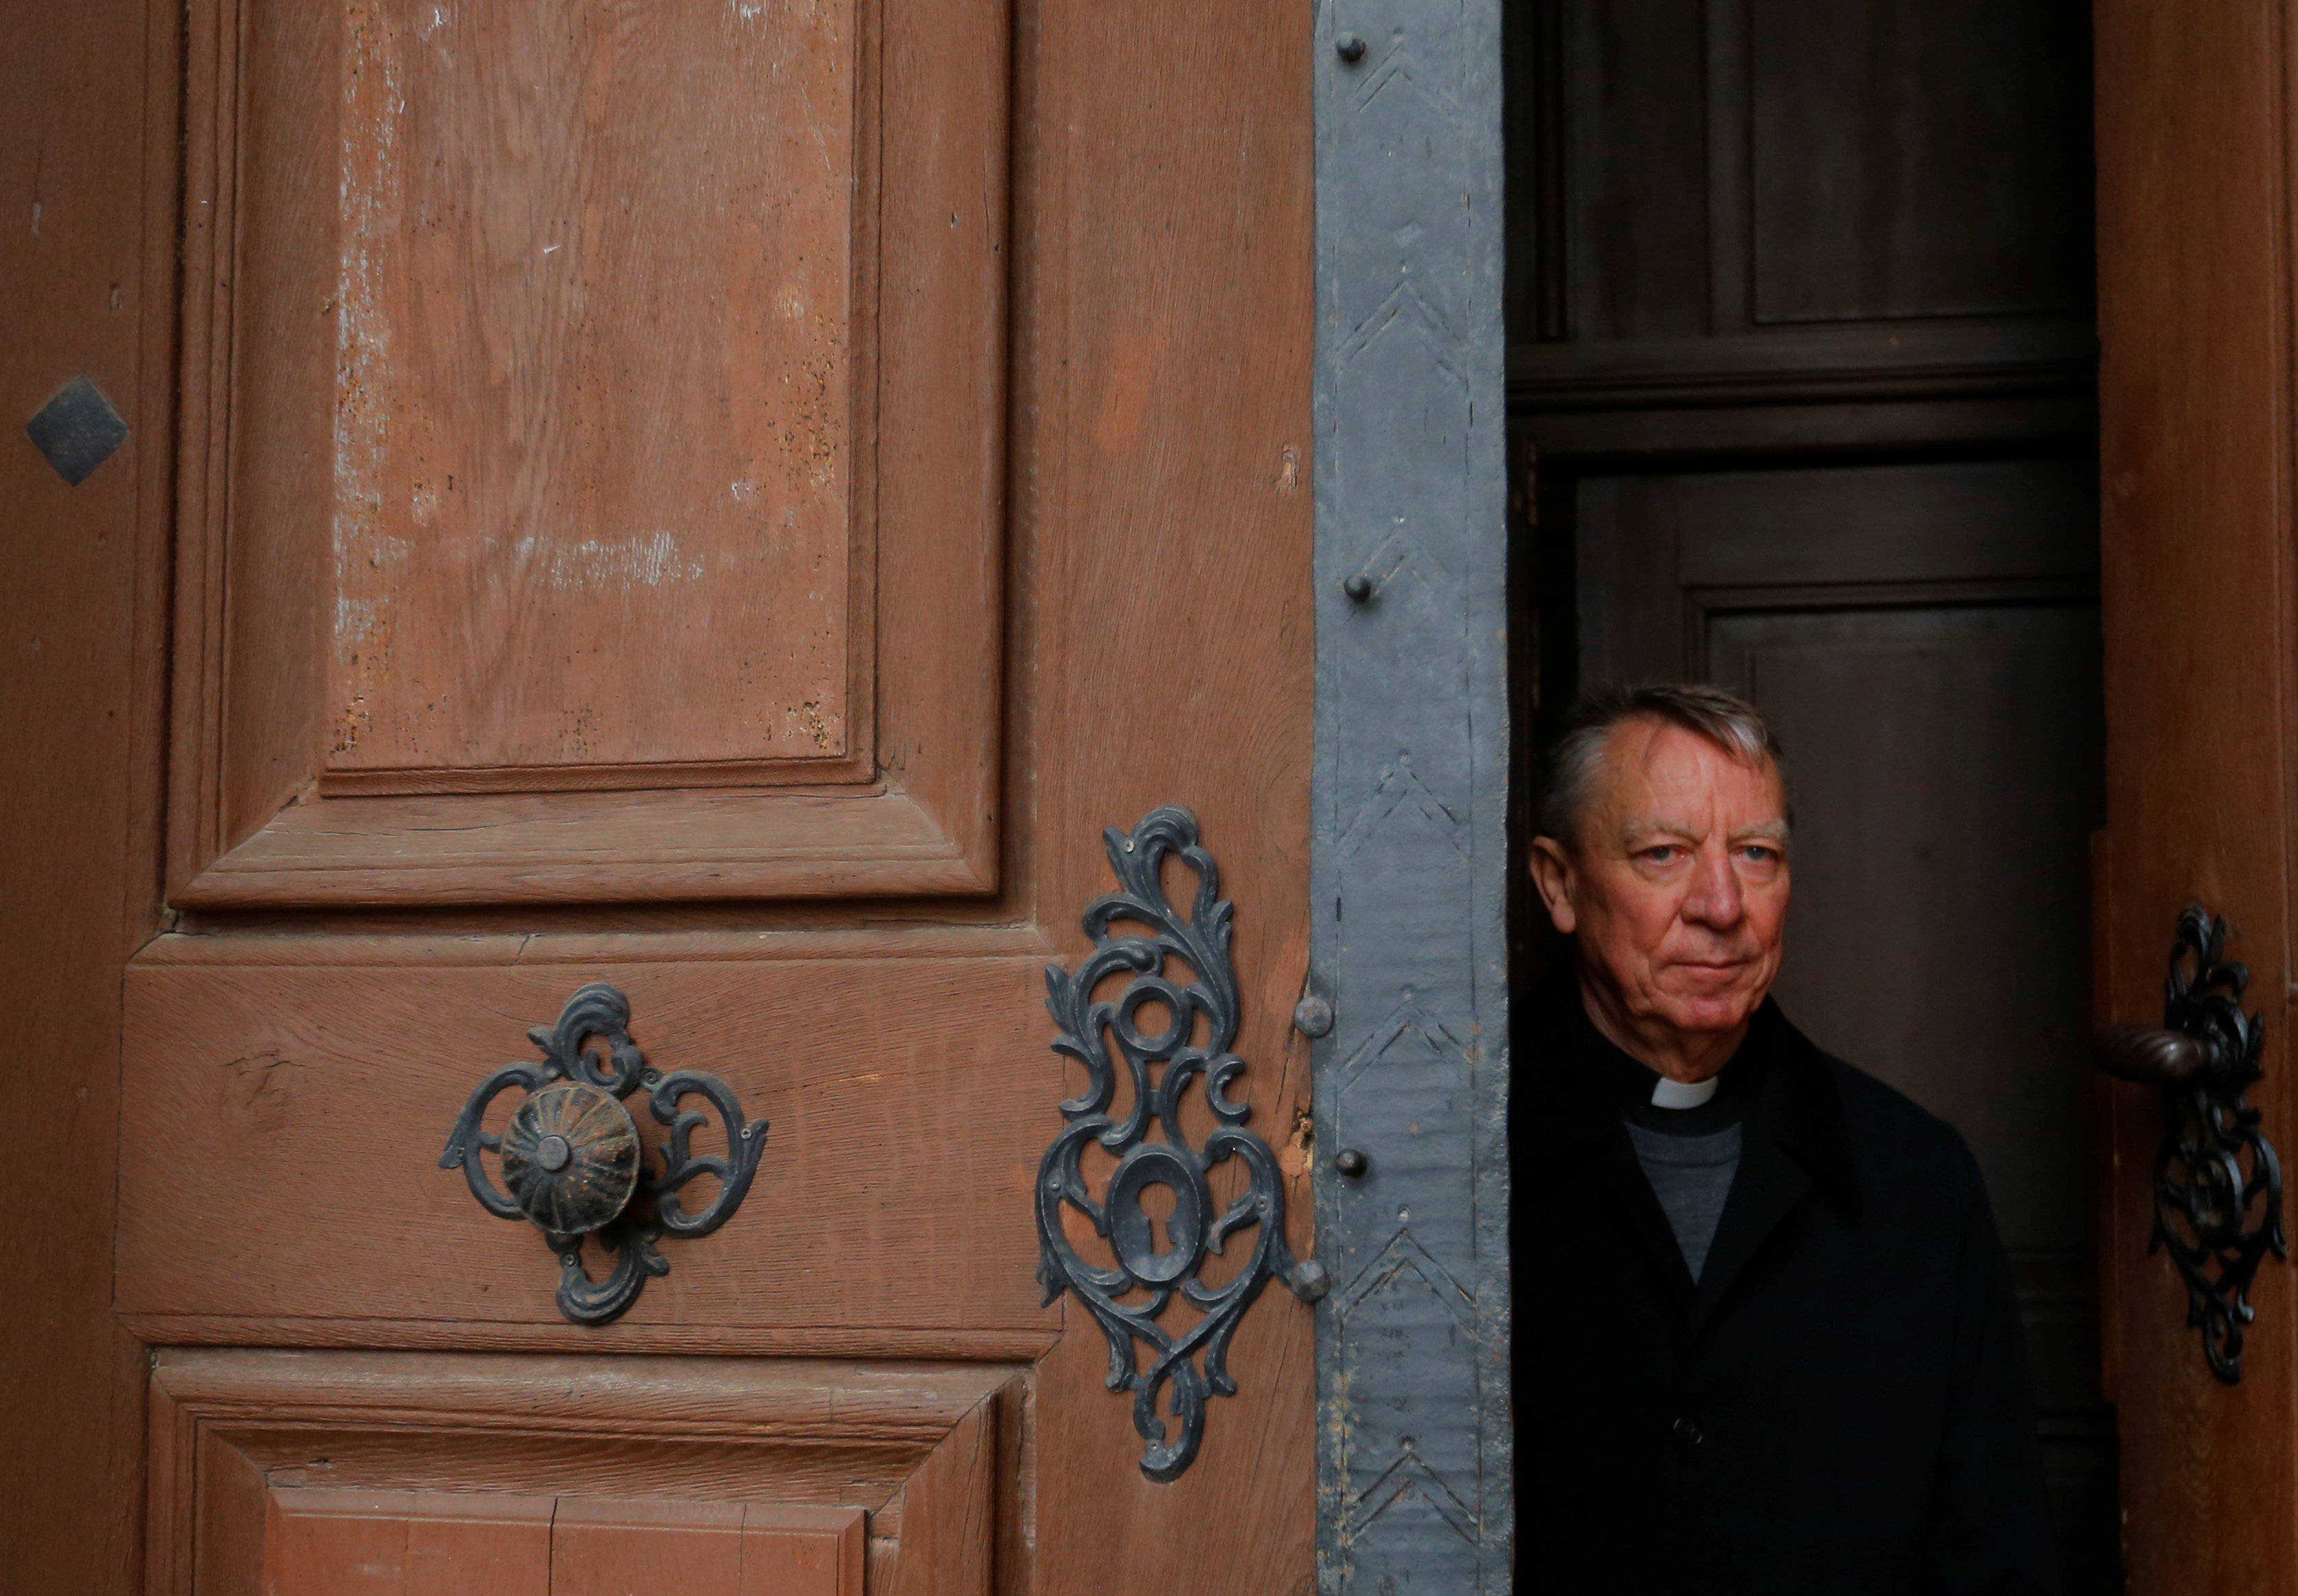 Miklos Beer, the bishop of Vac, stands at the gates of the cathedral in Vac, Hungary March 9, 2017. REUTERS/Laszlo Balogh